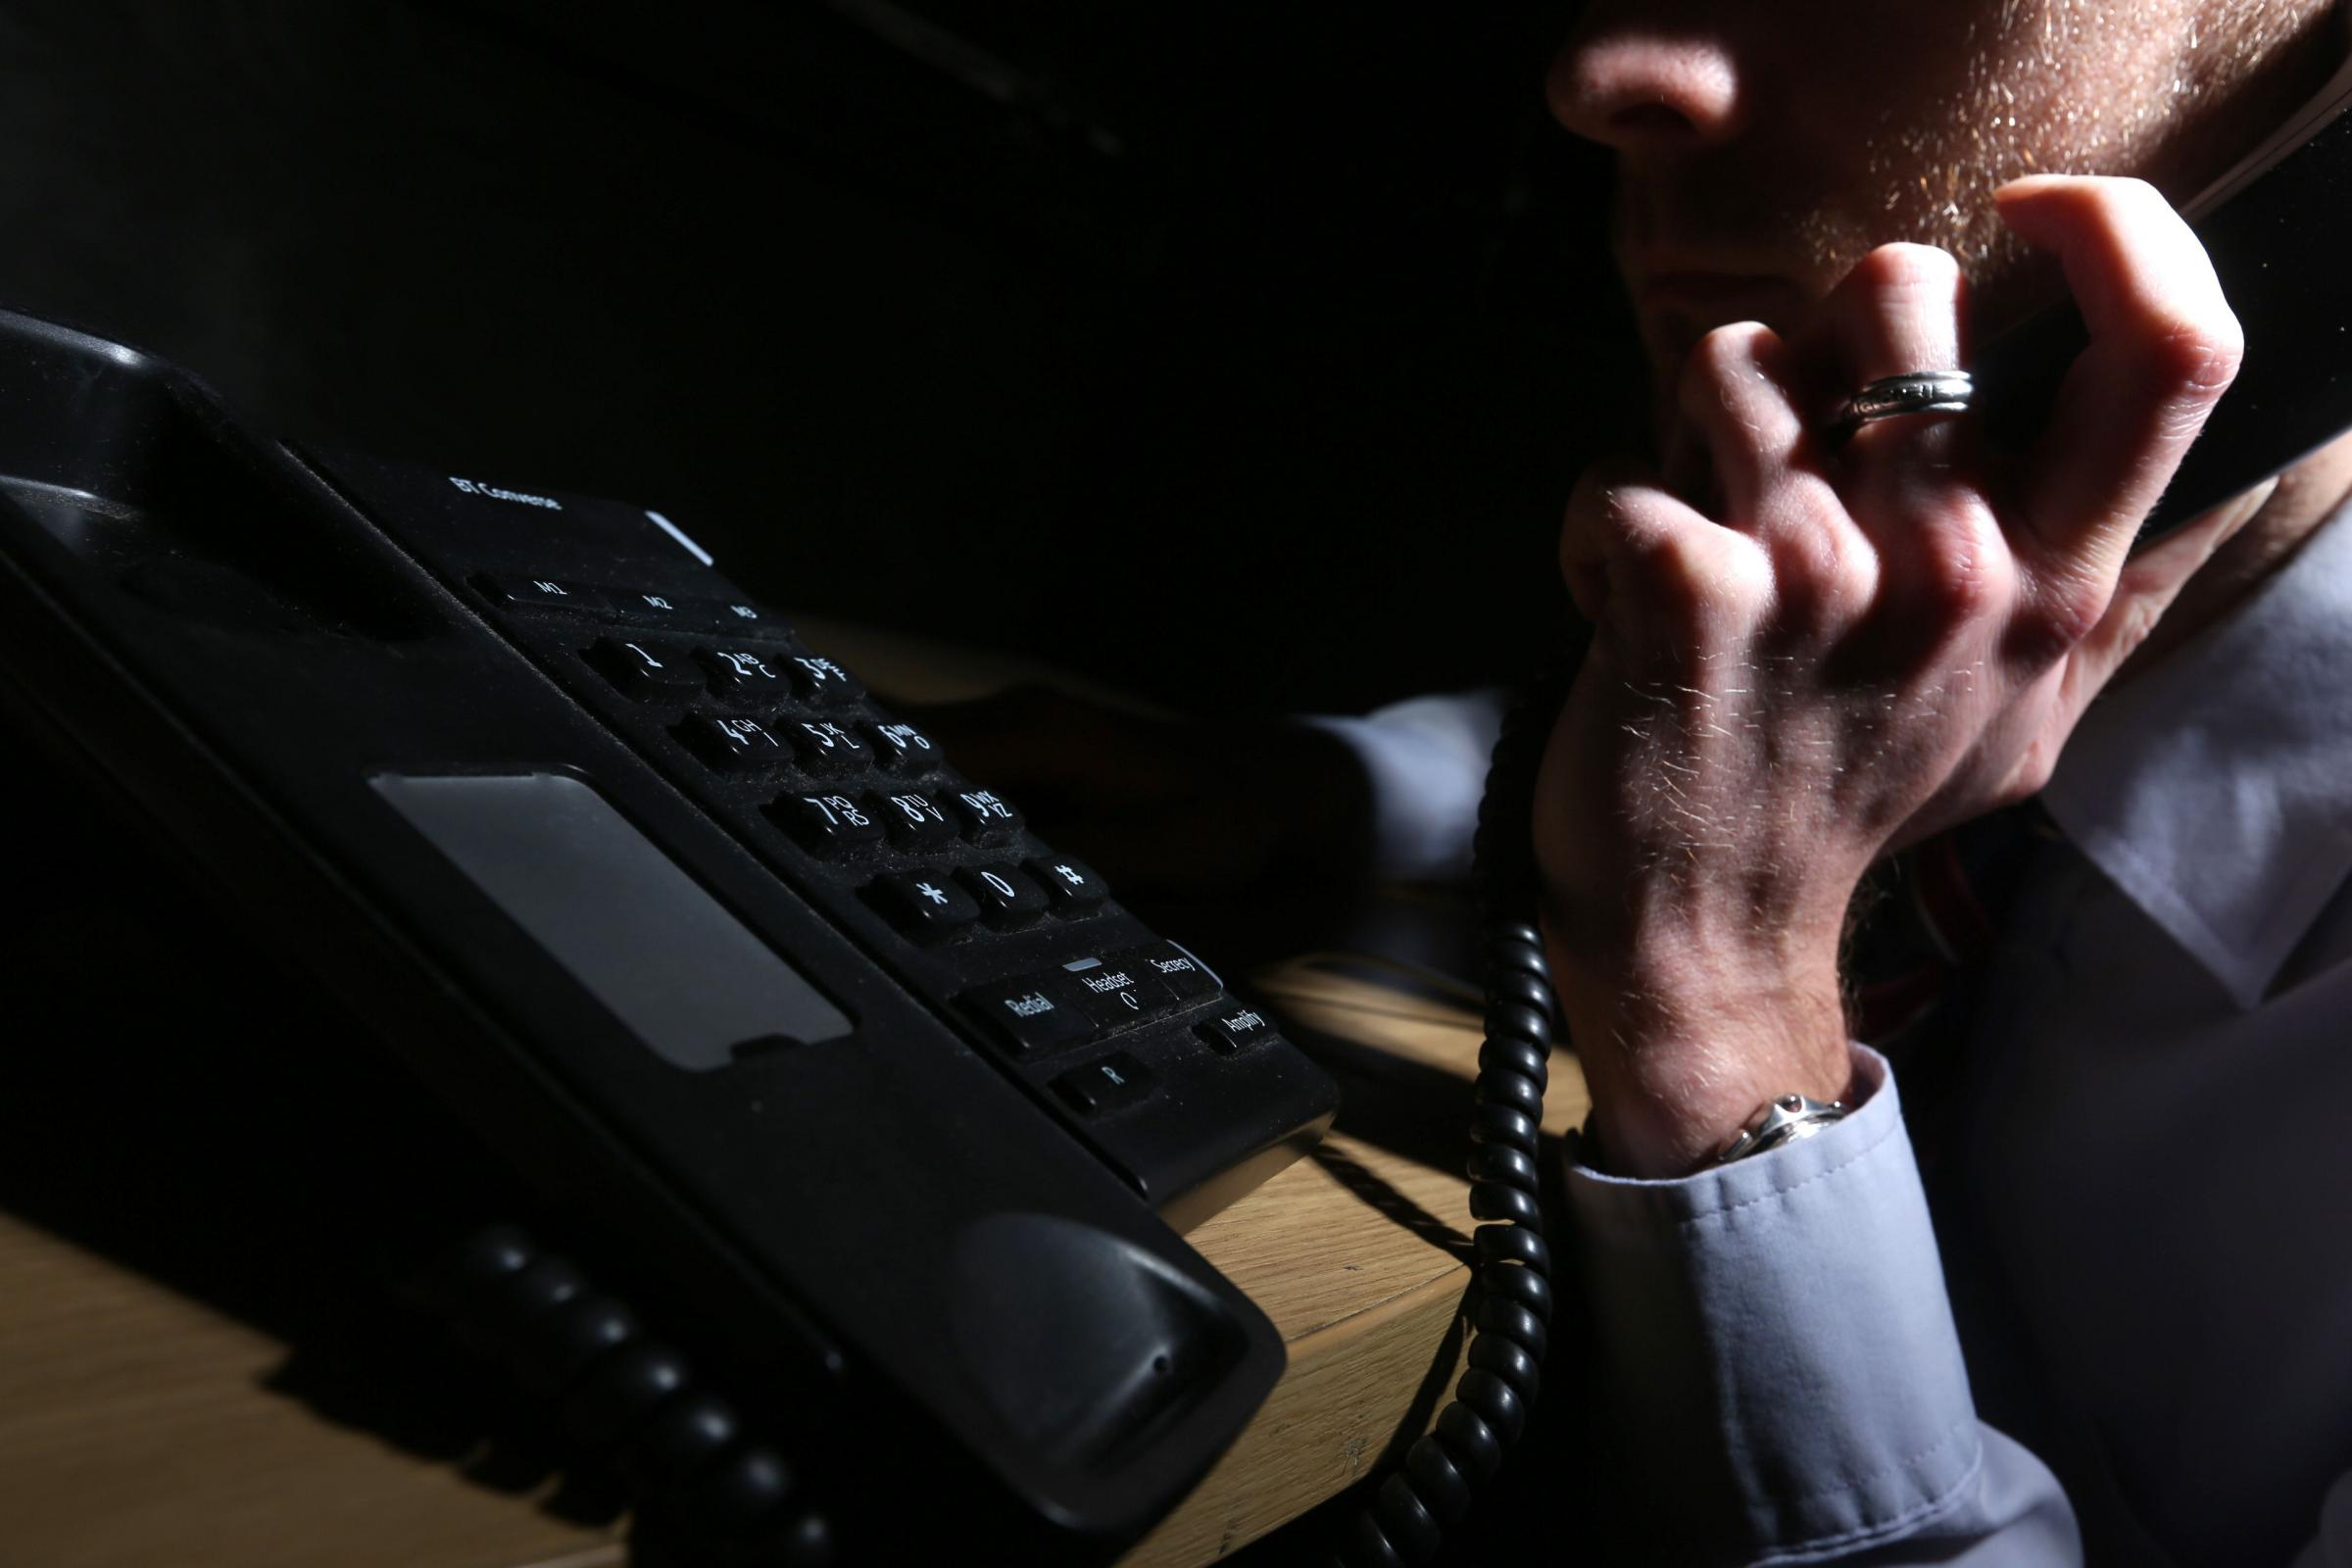 Farmers are being warned of an agricultural payments phone scam.